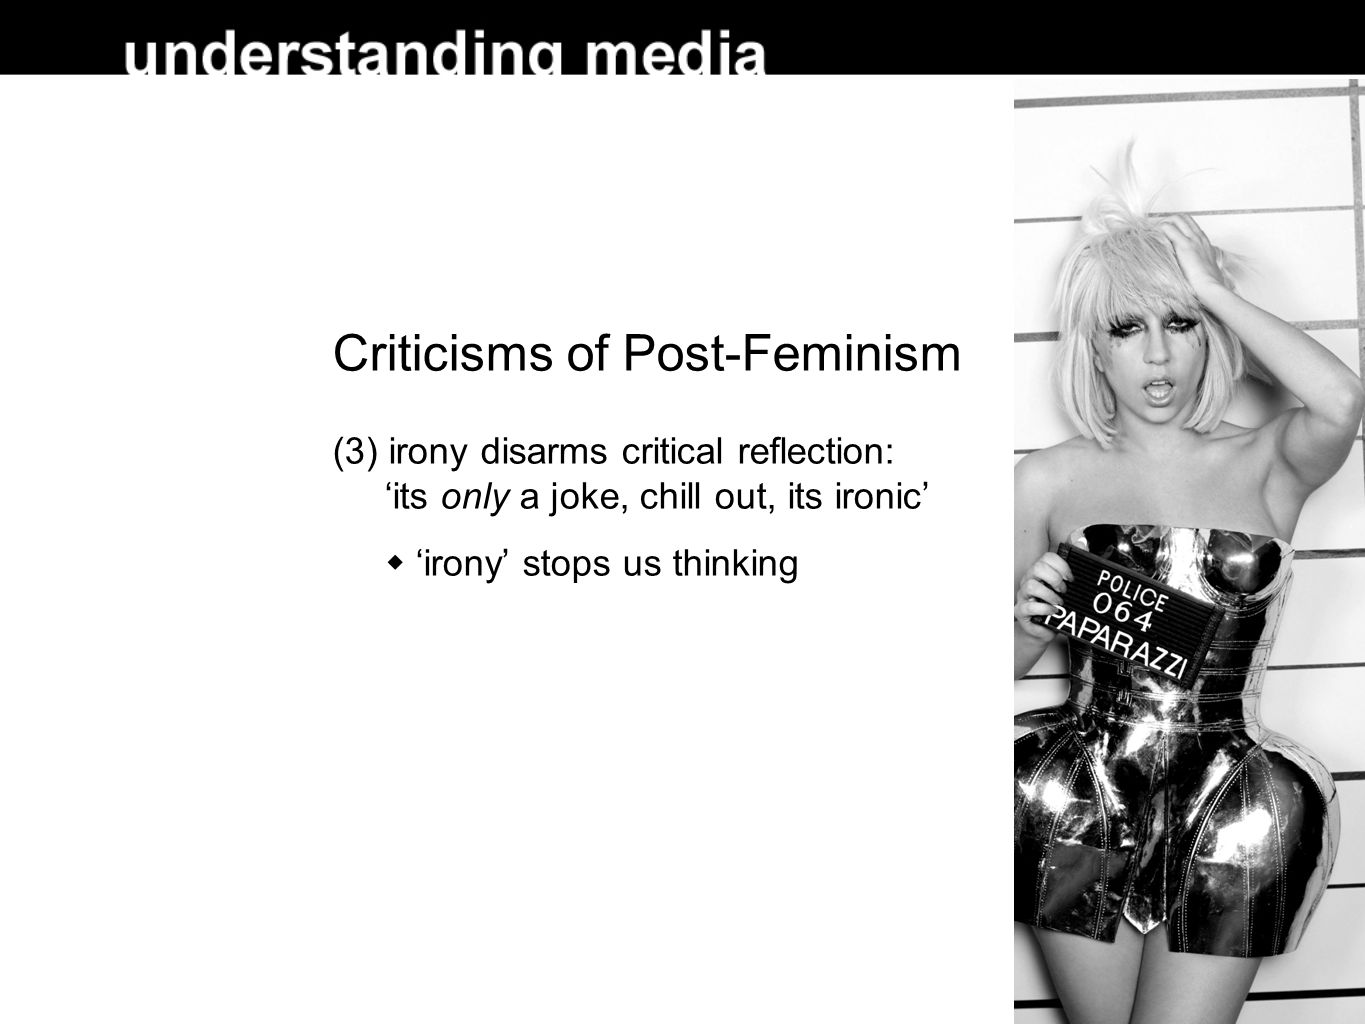 Criticisms of Post-Feminism (3) irony disarms critical reflection: 'its only a joke, chill out, its ironic'  'irony' stops us thinking